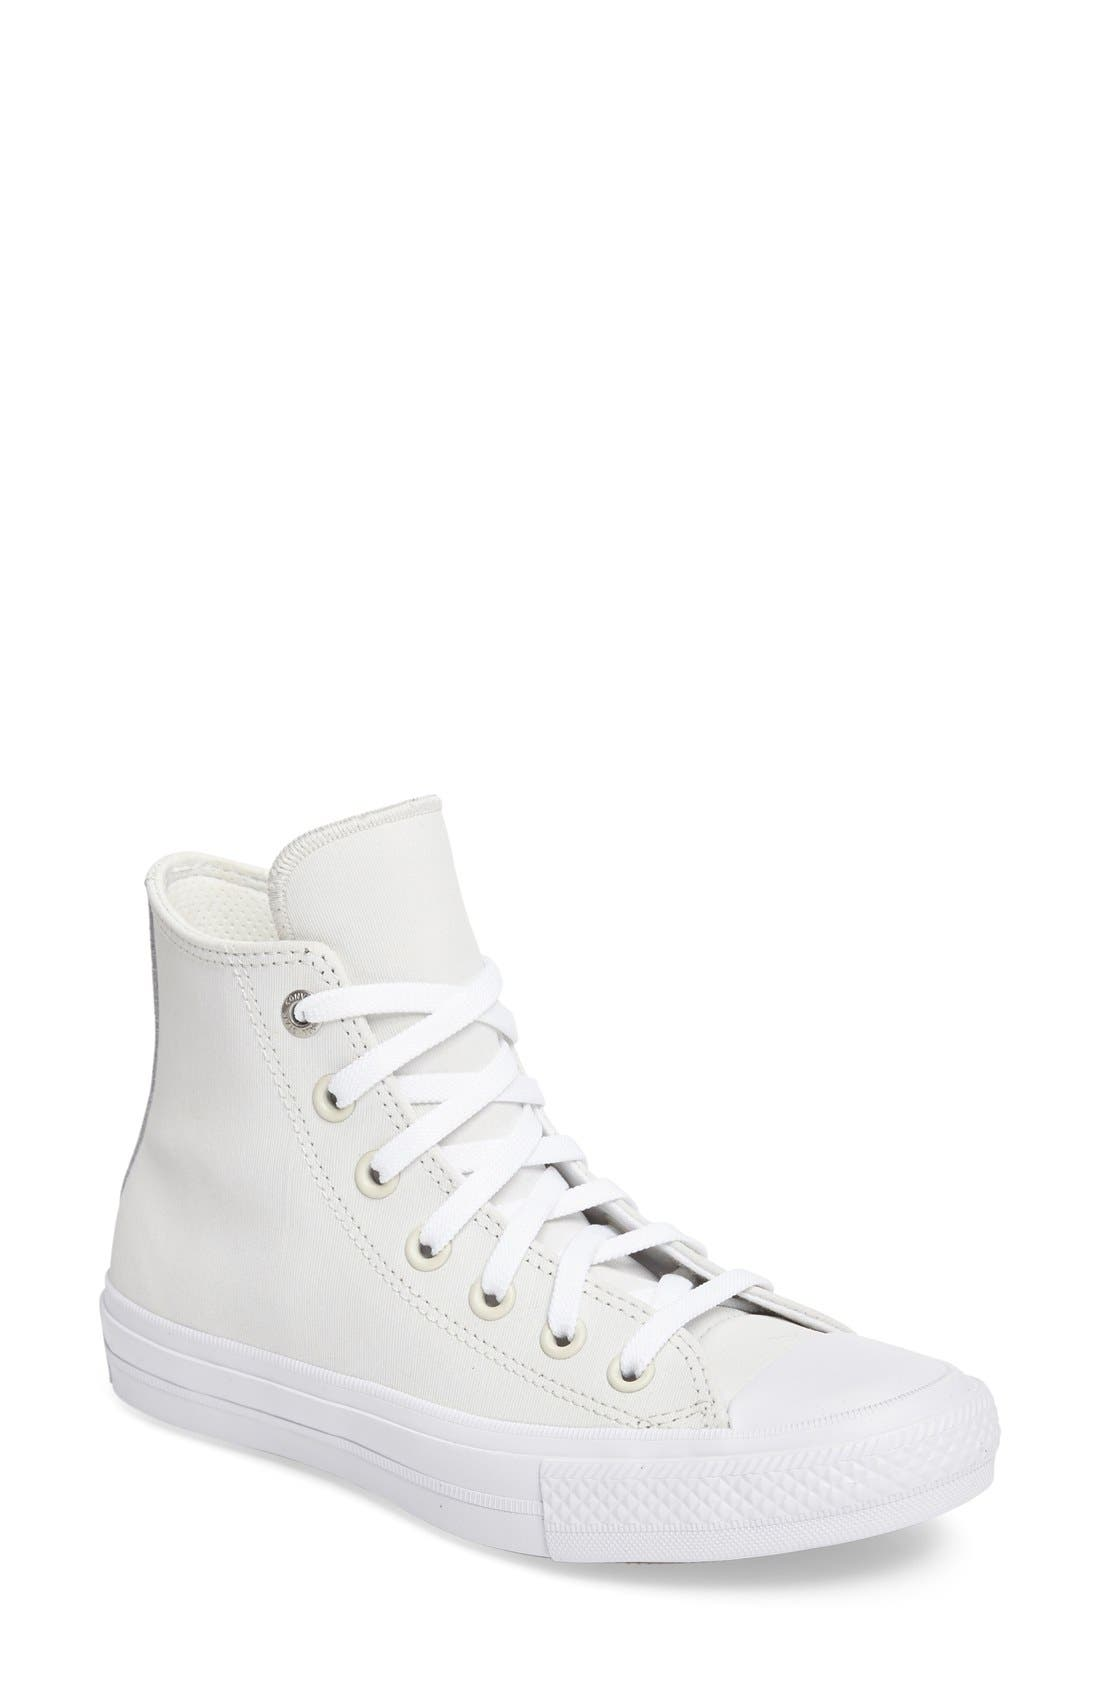 Chuck Taylor<sup>®</sup> All Star<sup>®</sup> II Two Tone High Top Sneaker, Main, color, 100